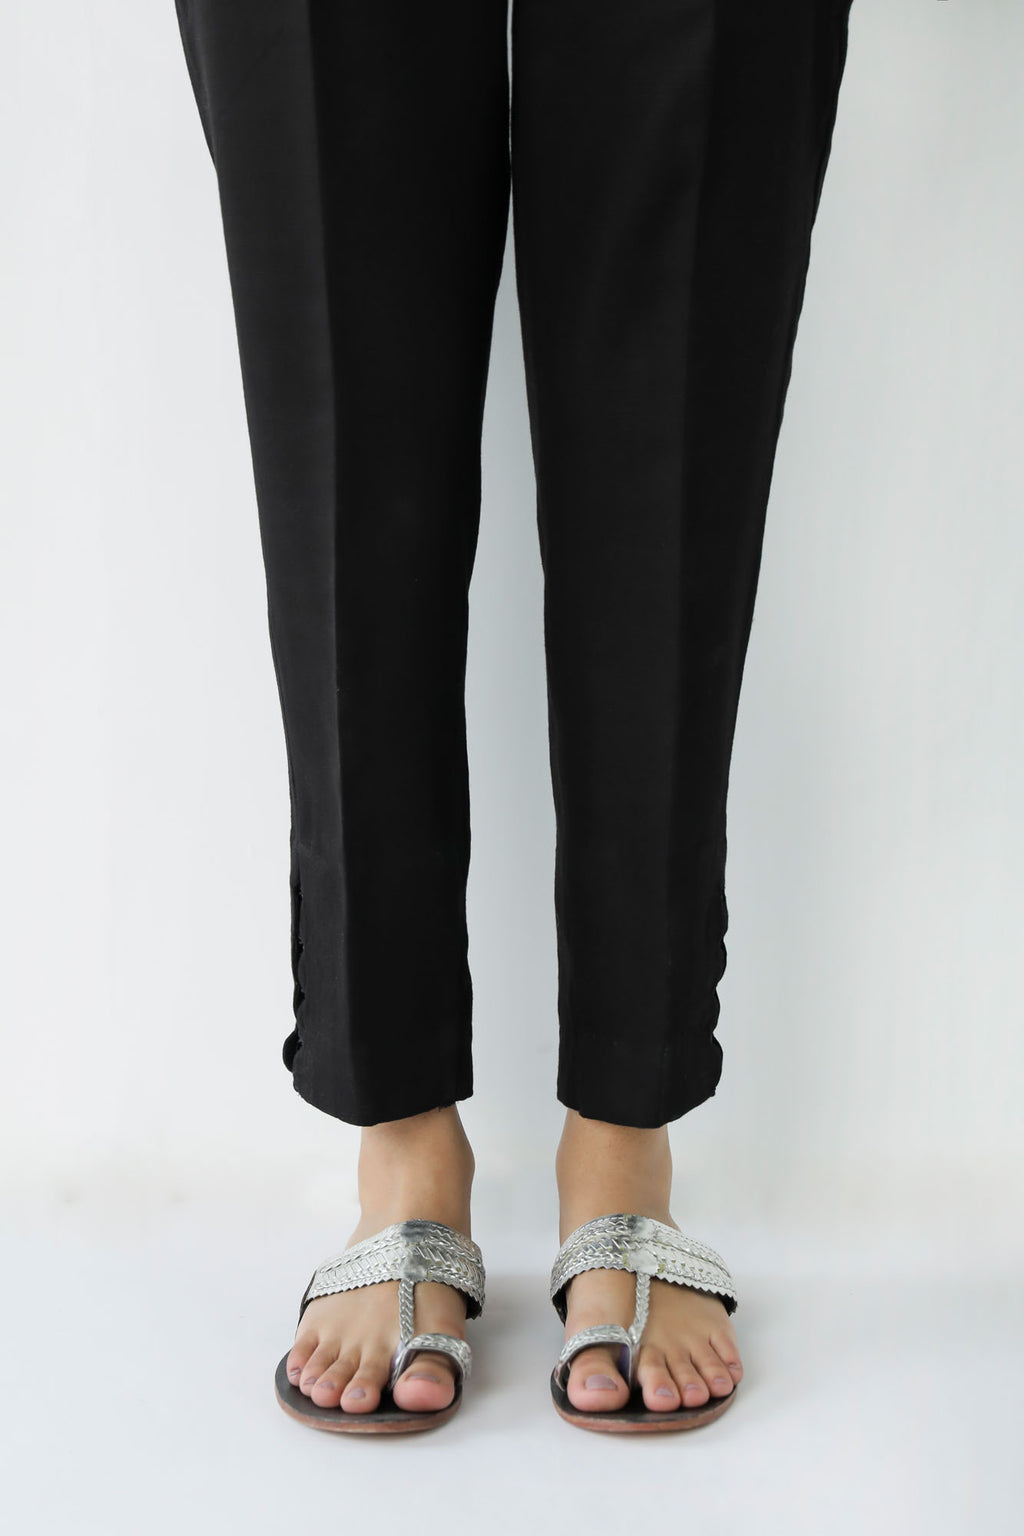 TAPERED CASUAL TROUSER (WBC401149) - Ethnic by Outfitters